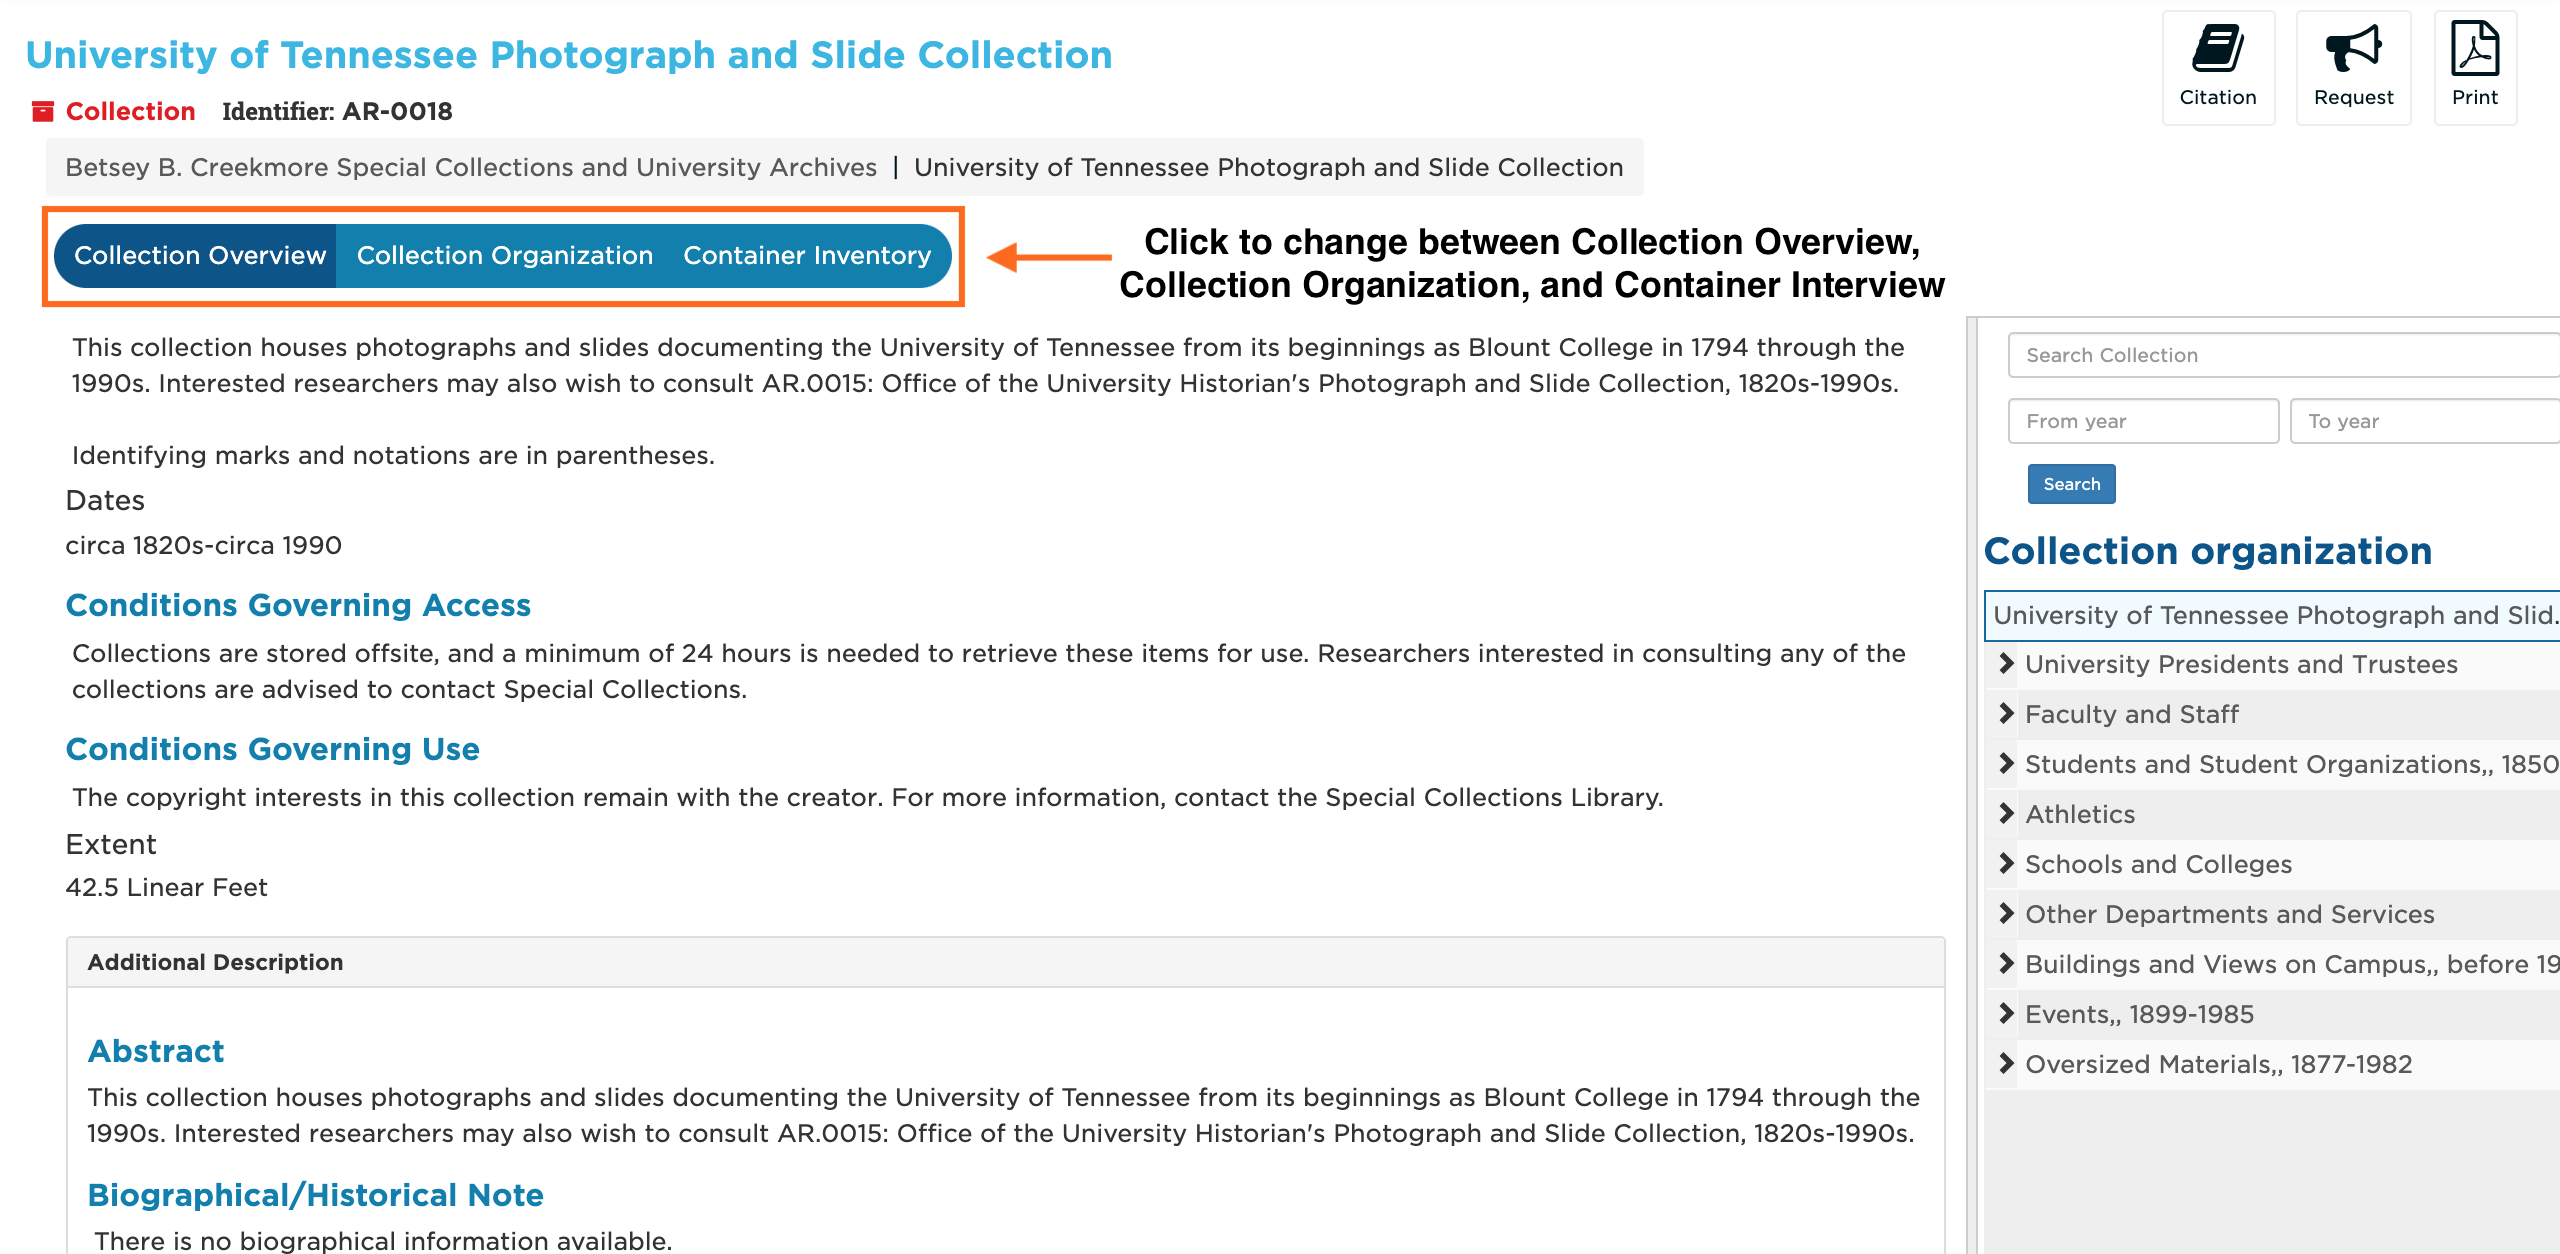 Screenshot marked up to show where to change the Collection Overview, Collection Organization, and Container Inventory